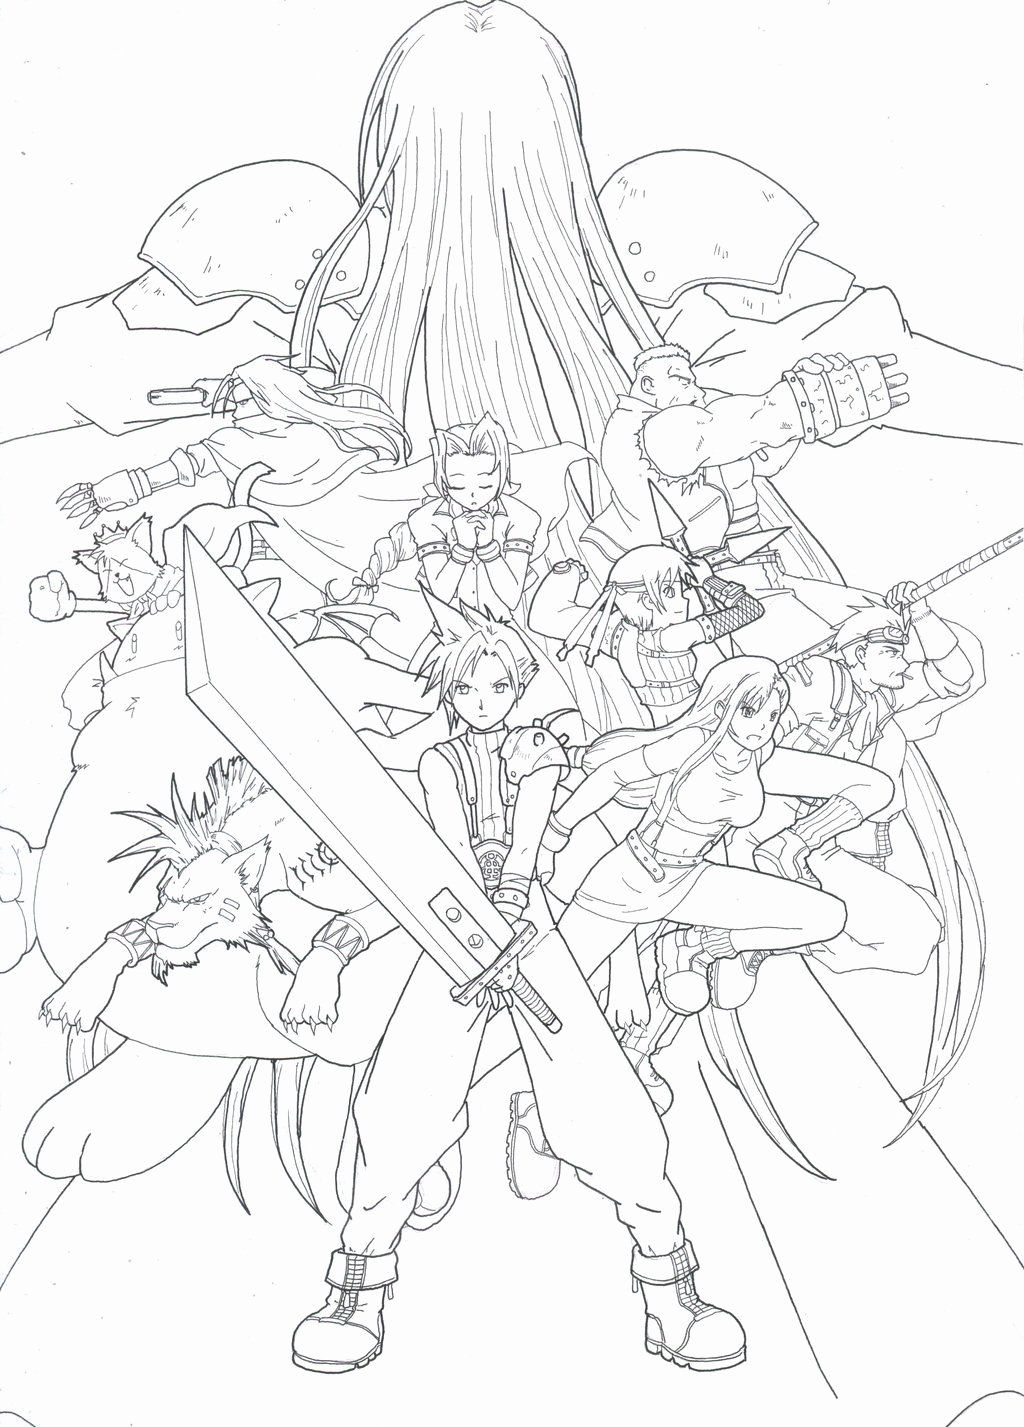 Pin En Anime Coloring Pages Ideas Printable [ 1427 x 1024 Pixel ]